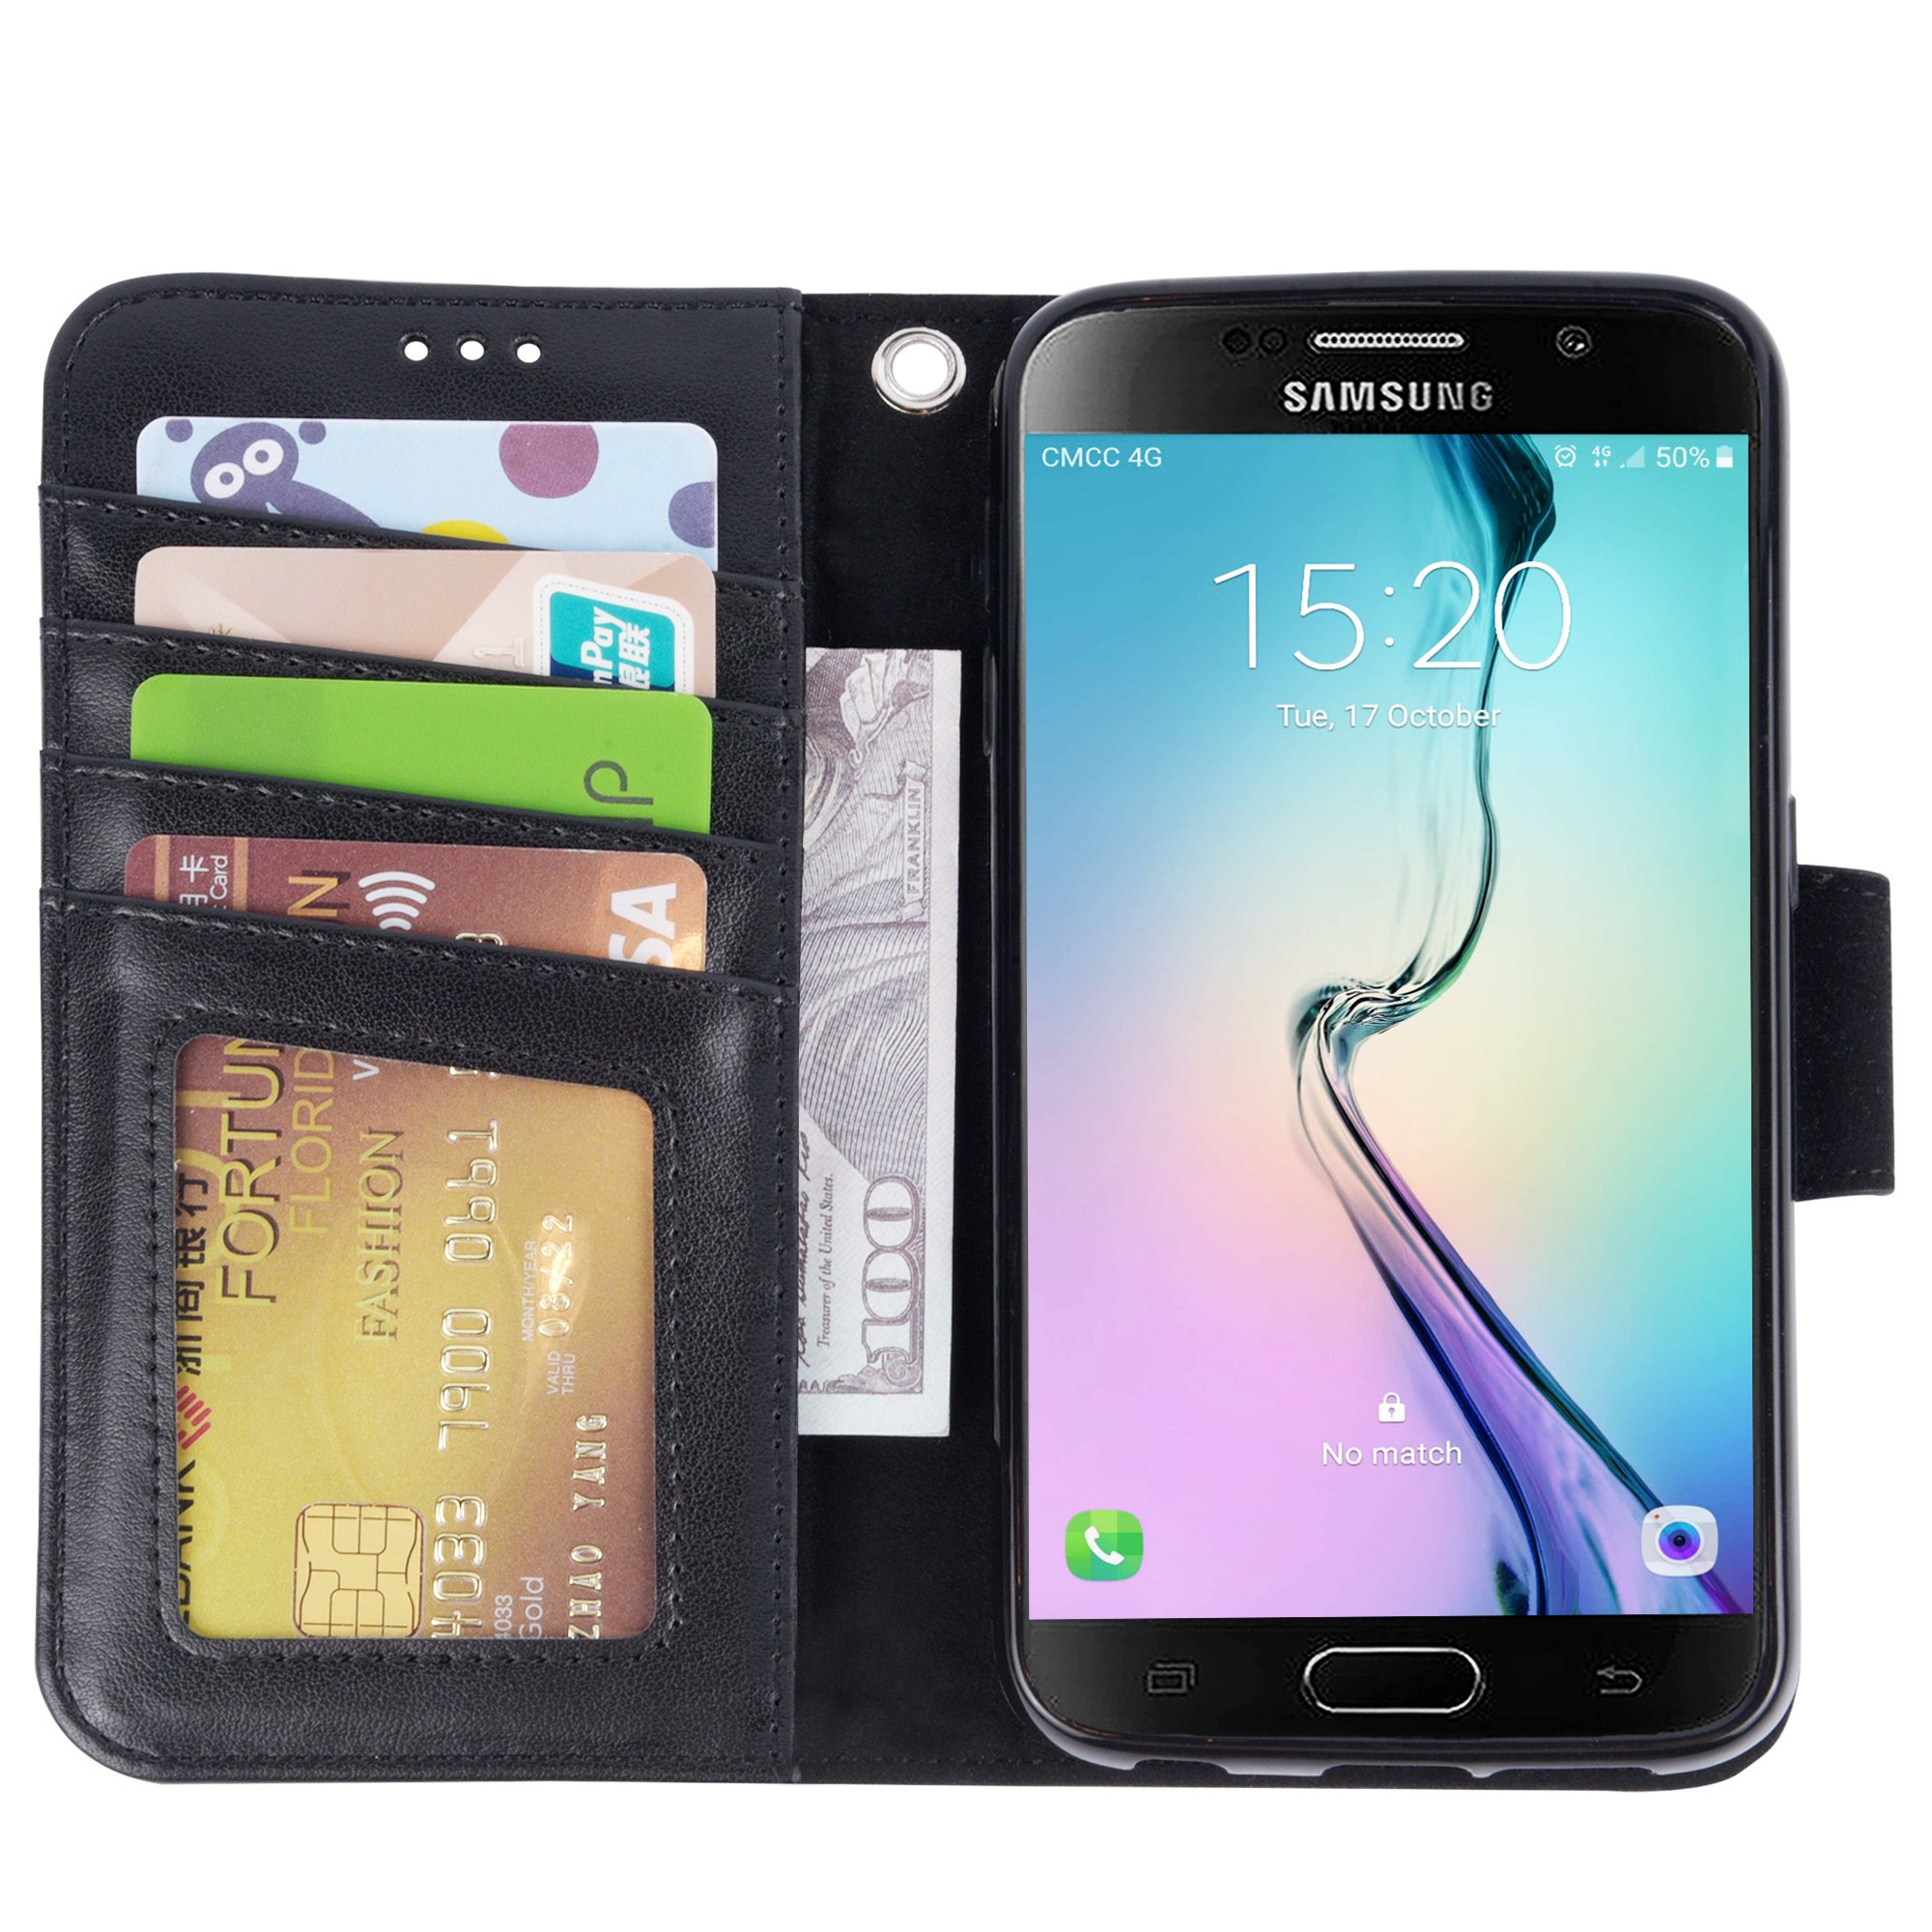 Arae Galaxy S6 Case, Samsung Galaxy S6 wallet case, [Wrist Strap] Flip Folio [Kickstand Feature] PU leather wallet case with ID&Credit Card Pockets For Samsung Galaxy S6 (Black) by Arae (Image #4)